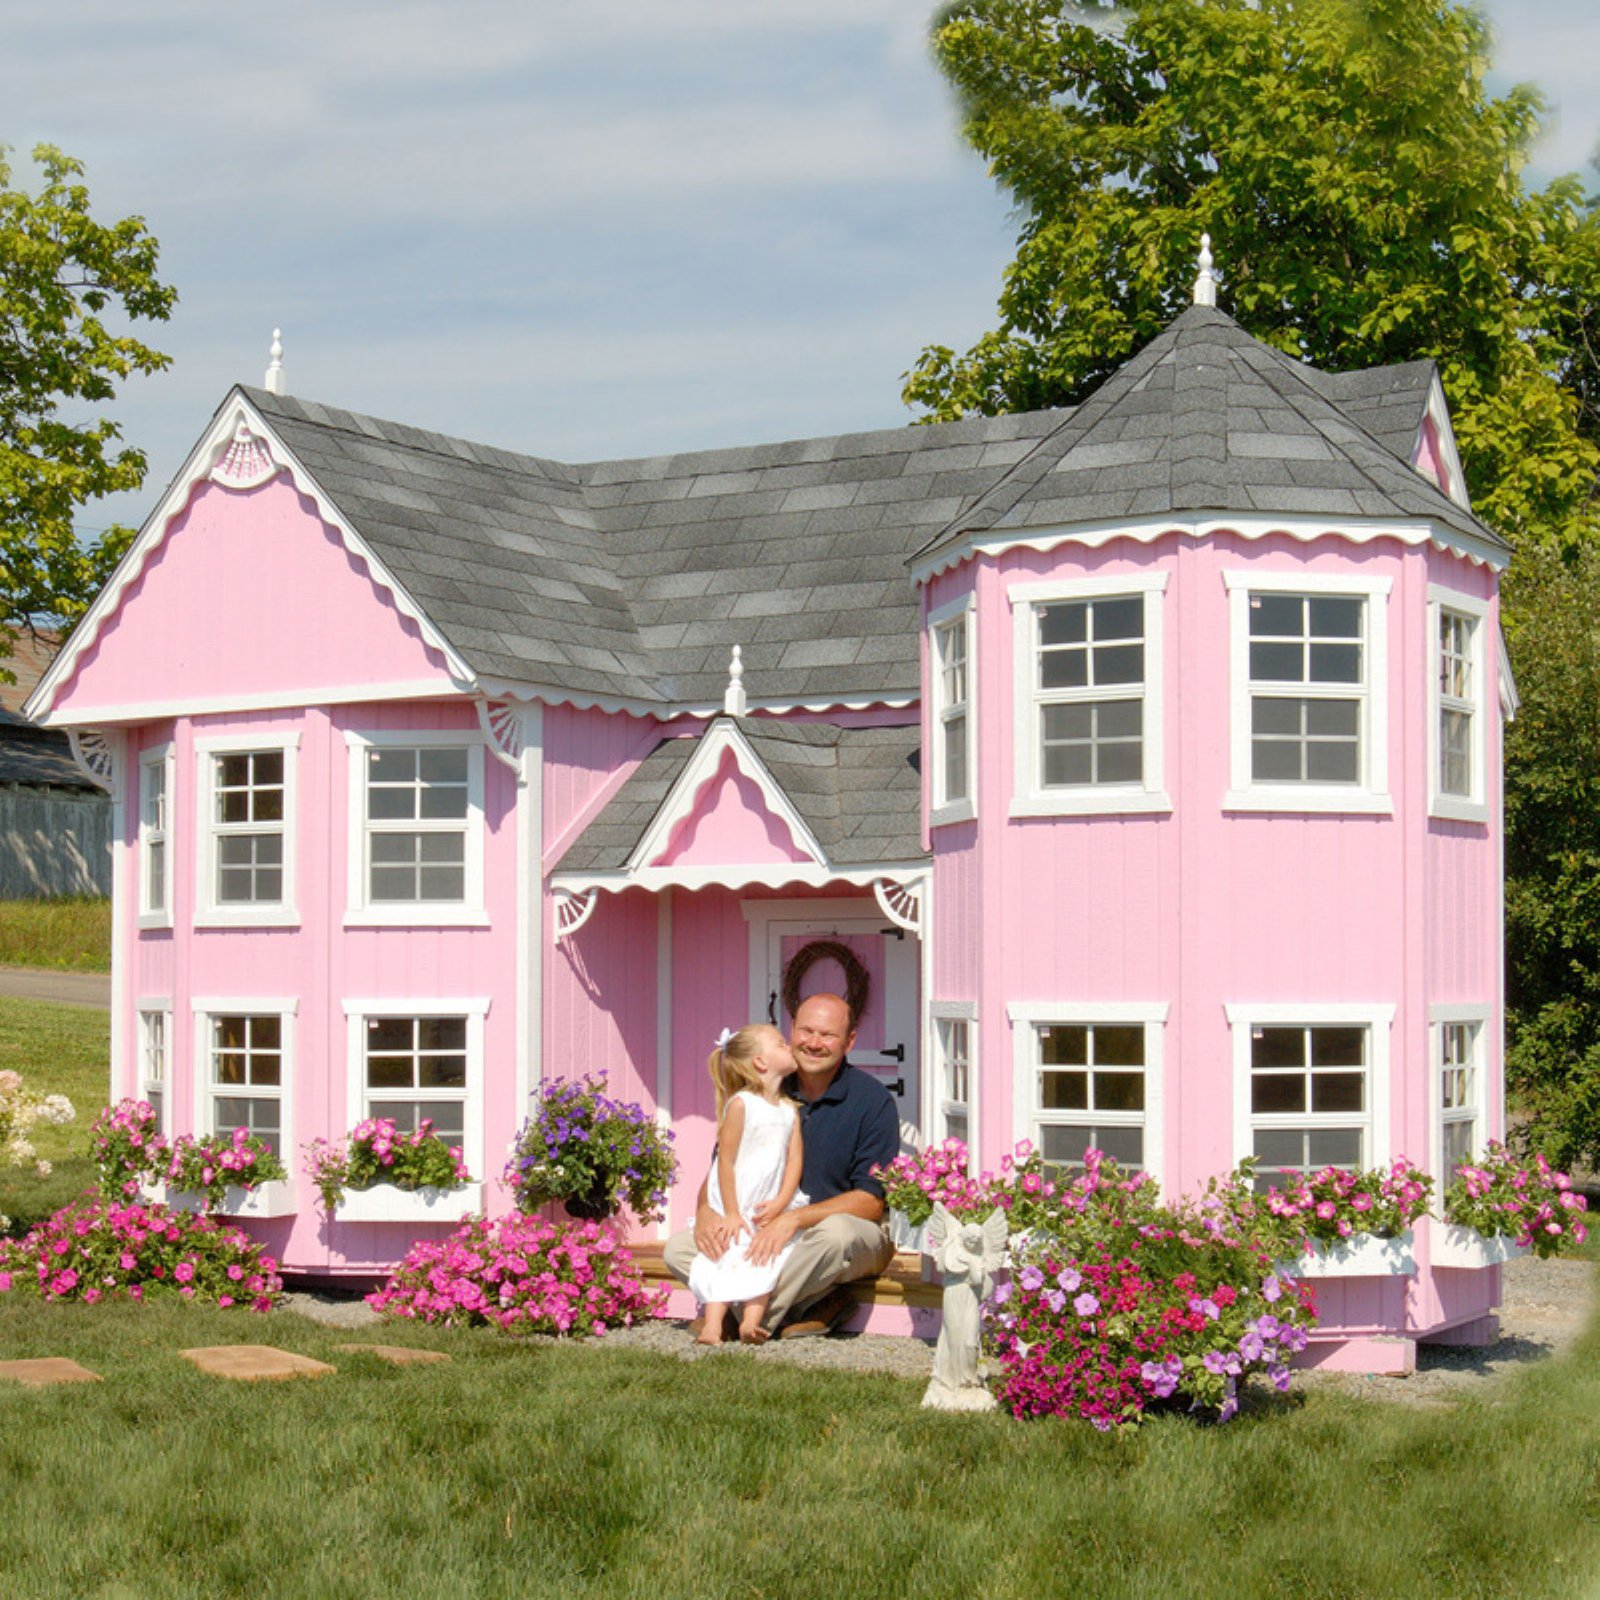 Little Cottage Sara Victorian 8 x 16 ft. Mansion Wood Playhouse by Little Cottage Co